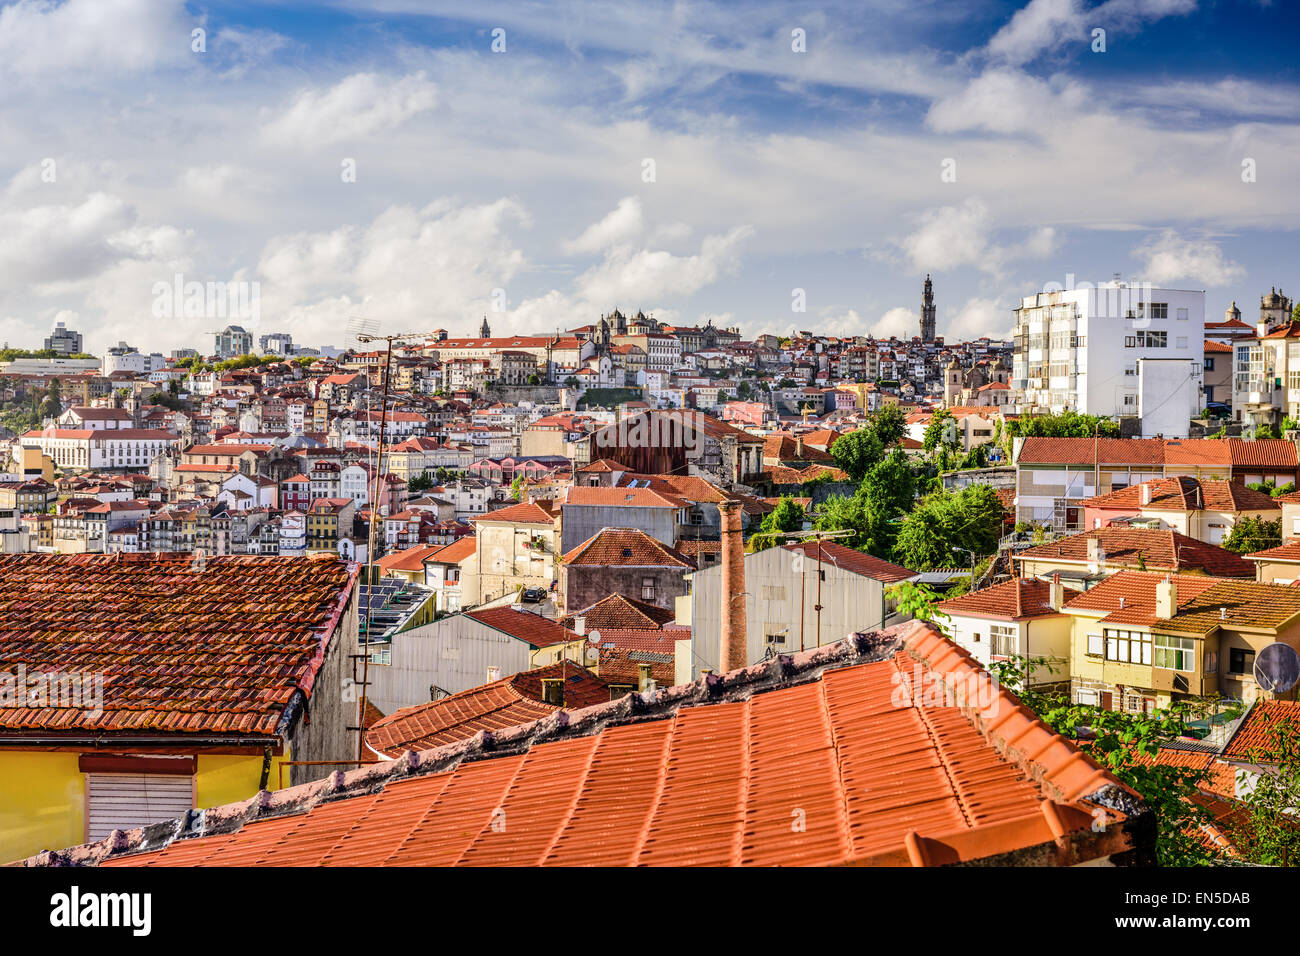 Porto, Portugal old town skyline. - Stock Image